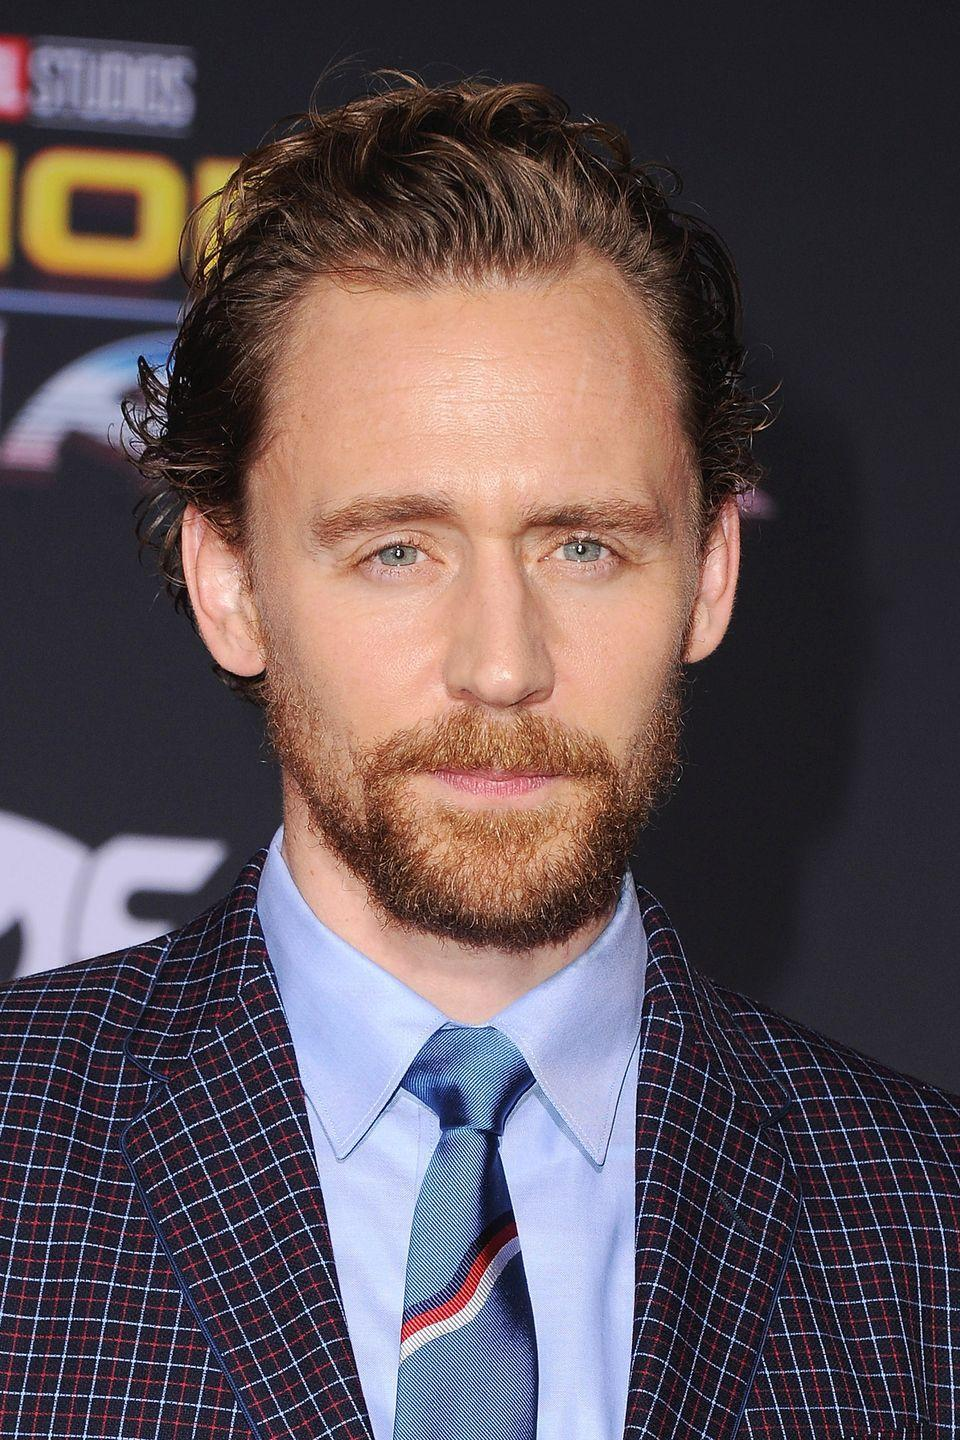 """<p><strong>The role: </strong><a href=""""https://geektyrant.com/news/10-actors-who-auditioned-for-the-hero-but-were-cast-as-the-villain-ergt"""" rel=""""nofollow noopener"""" target=""""_blank"""" data-ylk=""""slk:Thor"""" class=""""link rapid-noclick-resp"""">Thor</a> in <em>Thor</em> (2008)</p><p> <strong>Who *actually* played it:</strong> Chris Hemsworth </p><p> <strong>The role they played instead:</strong> Loki</p><p>This is just another case of an actor landing a supporting role after impressing producers while auditioning for the lead in a superhero movie.</p>"""